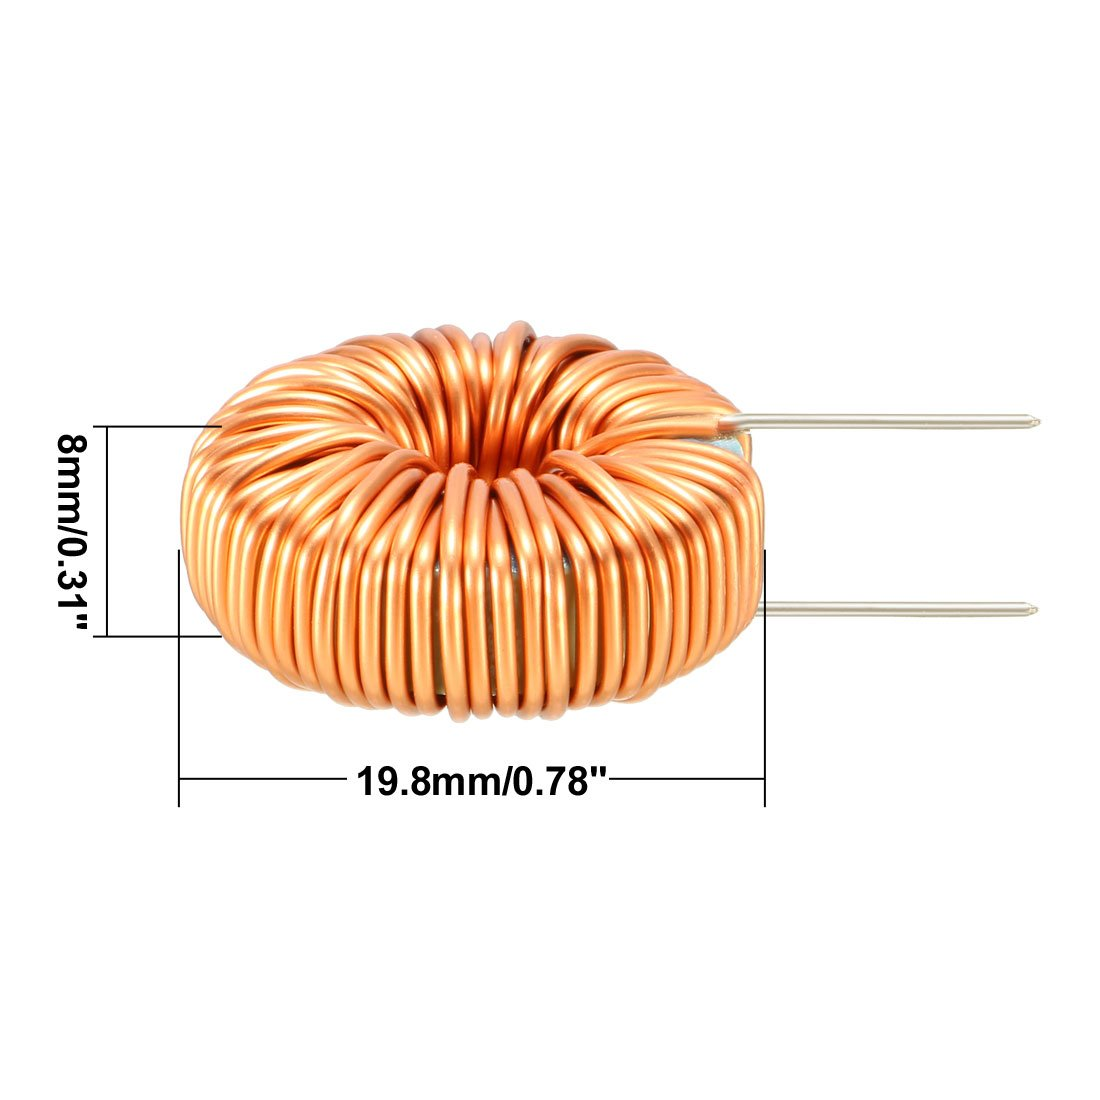 Uxcell 1pcs Horizontal Toroid Magnetic Inductor Monolayer Wire Wind Wiring Diagram Wound 100uh 20a Inductance Coil A18061100ux0005